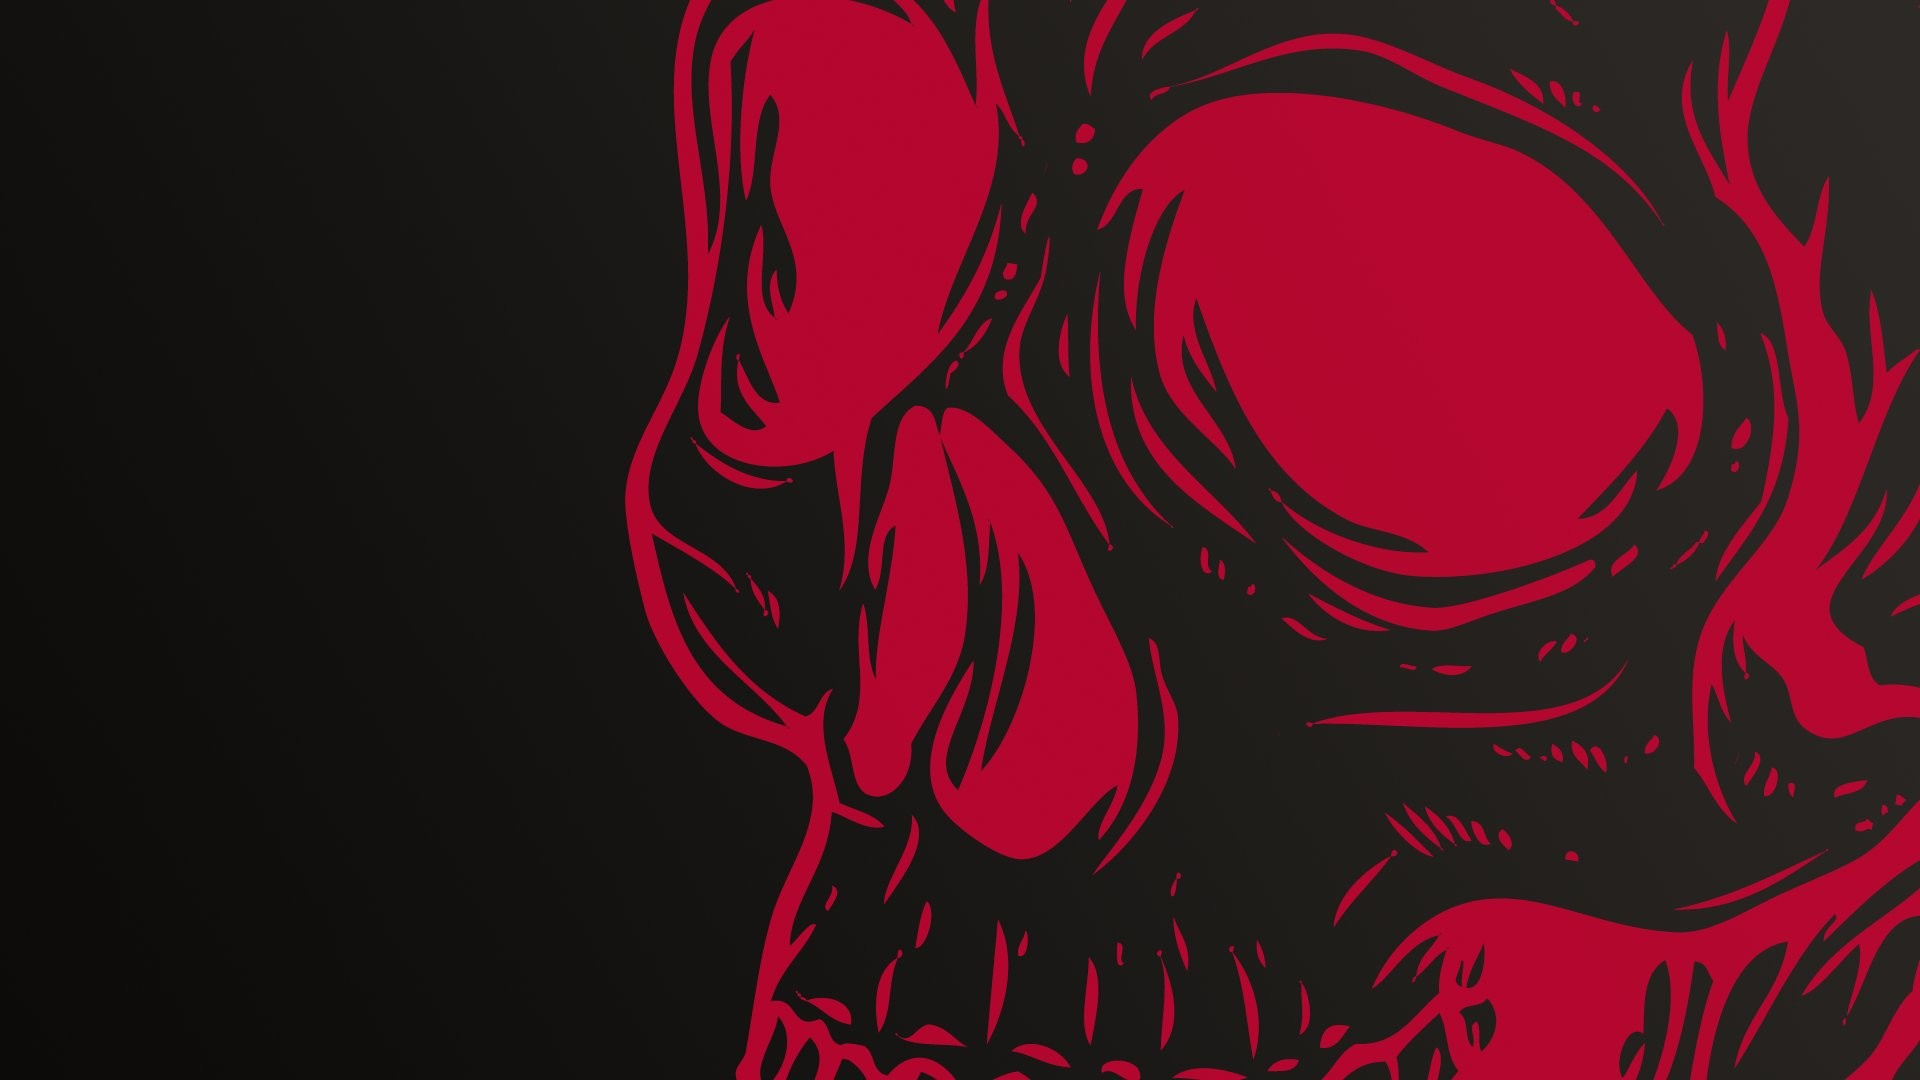 Skull Wallpapers Group 1920×1080 Red And Black Skull Wallpapers | Adorable  Wallpapers